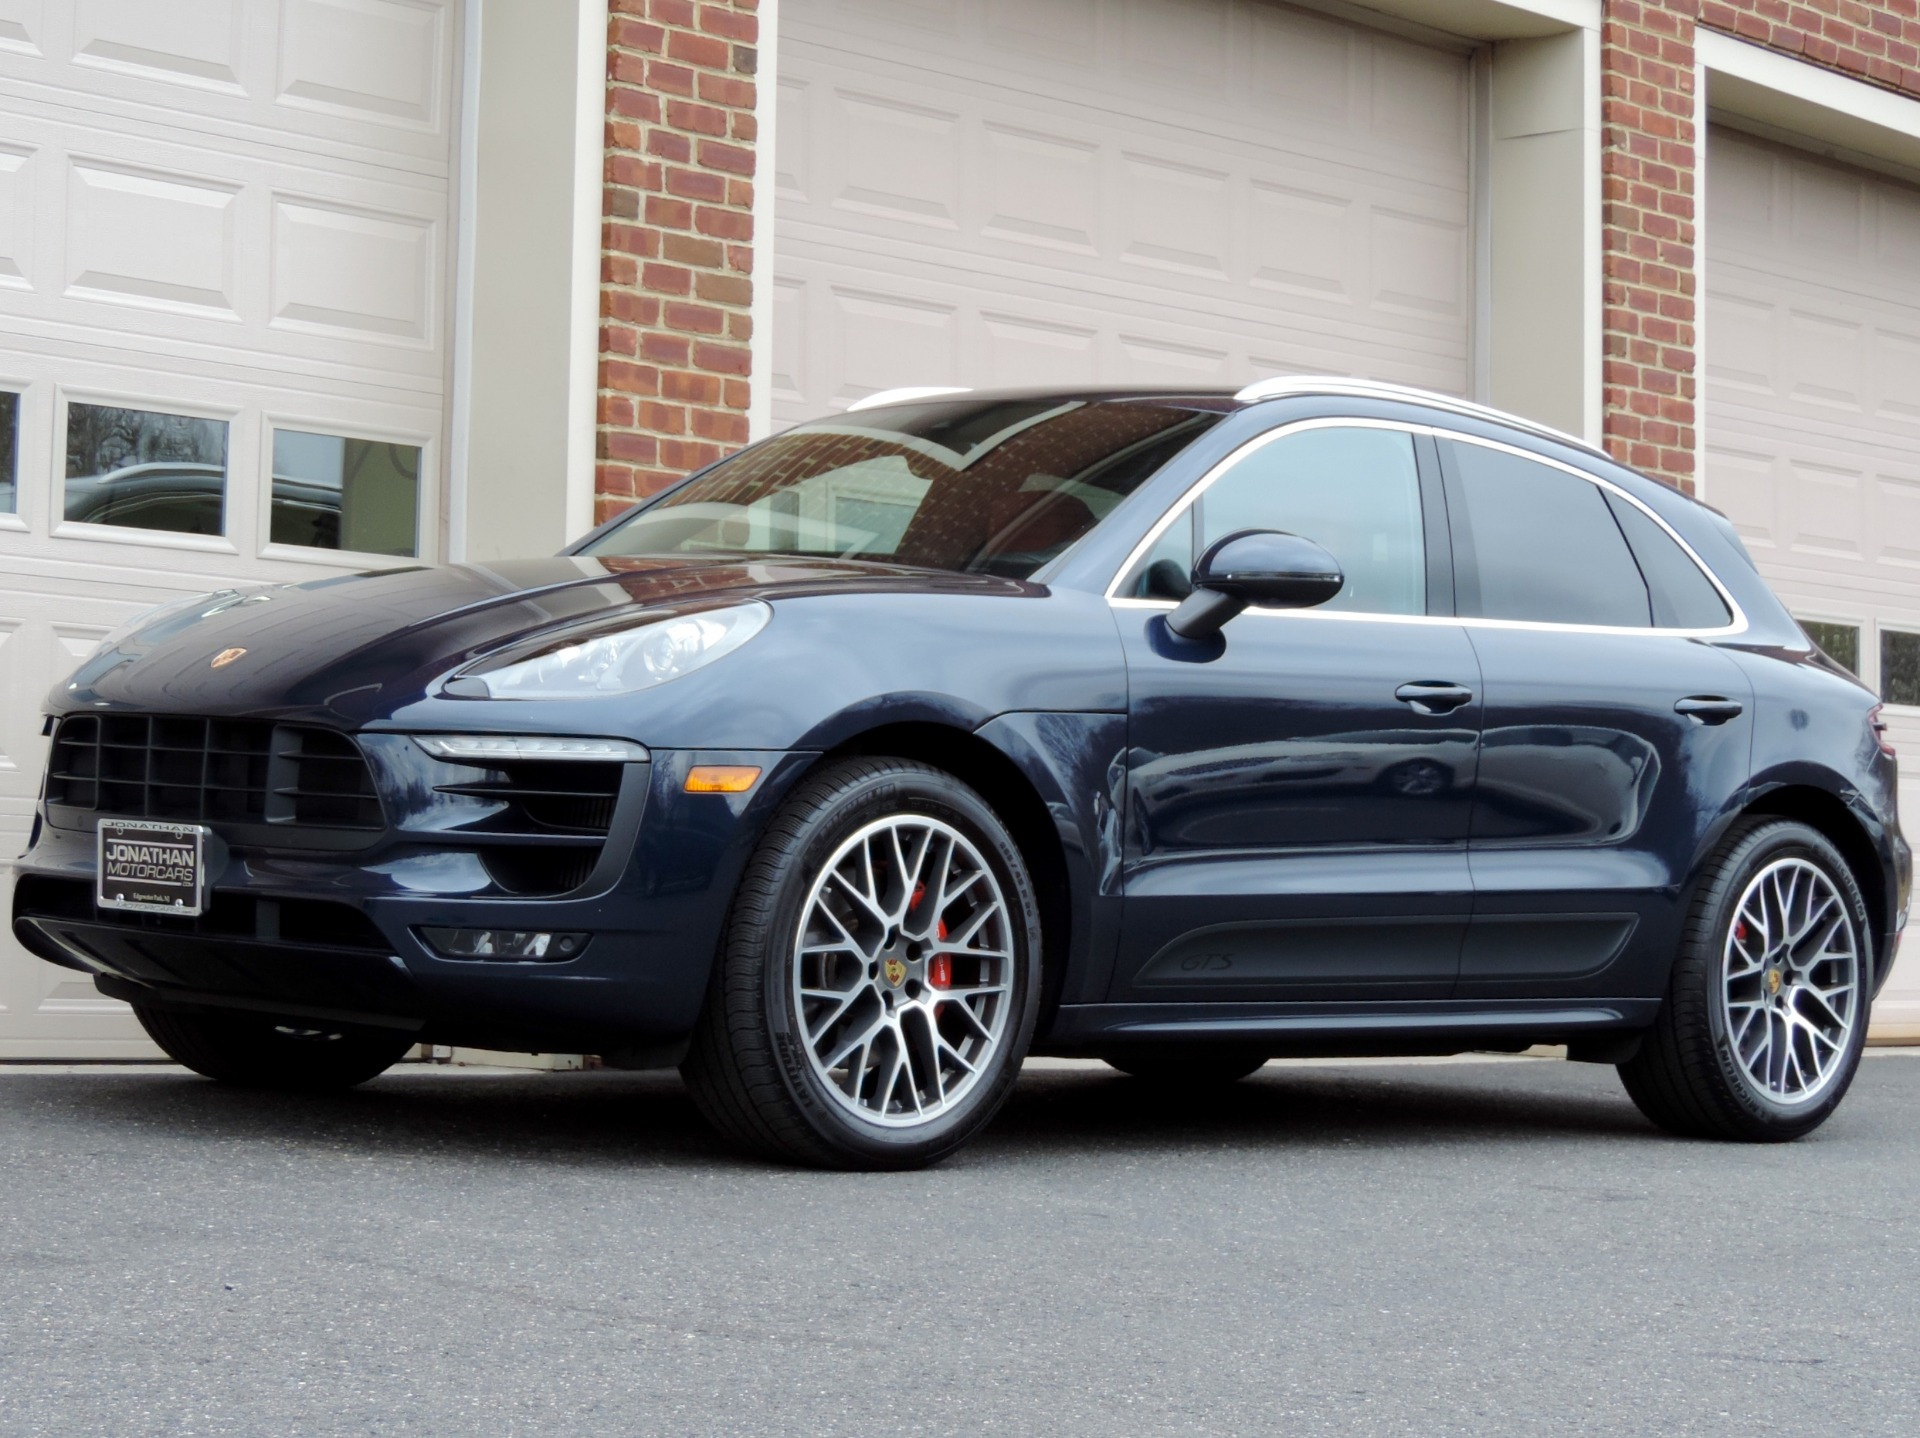 2017 Porsche Macan GTS Stock # B51938 For Sale Near